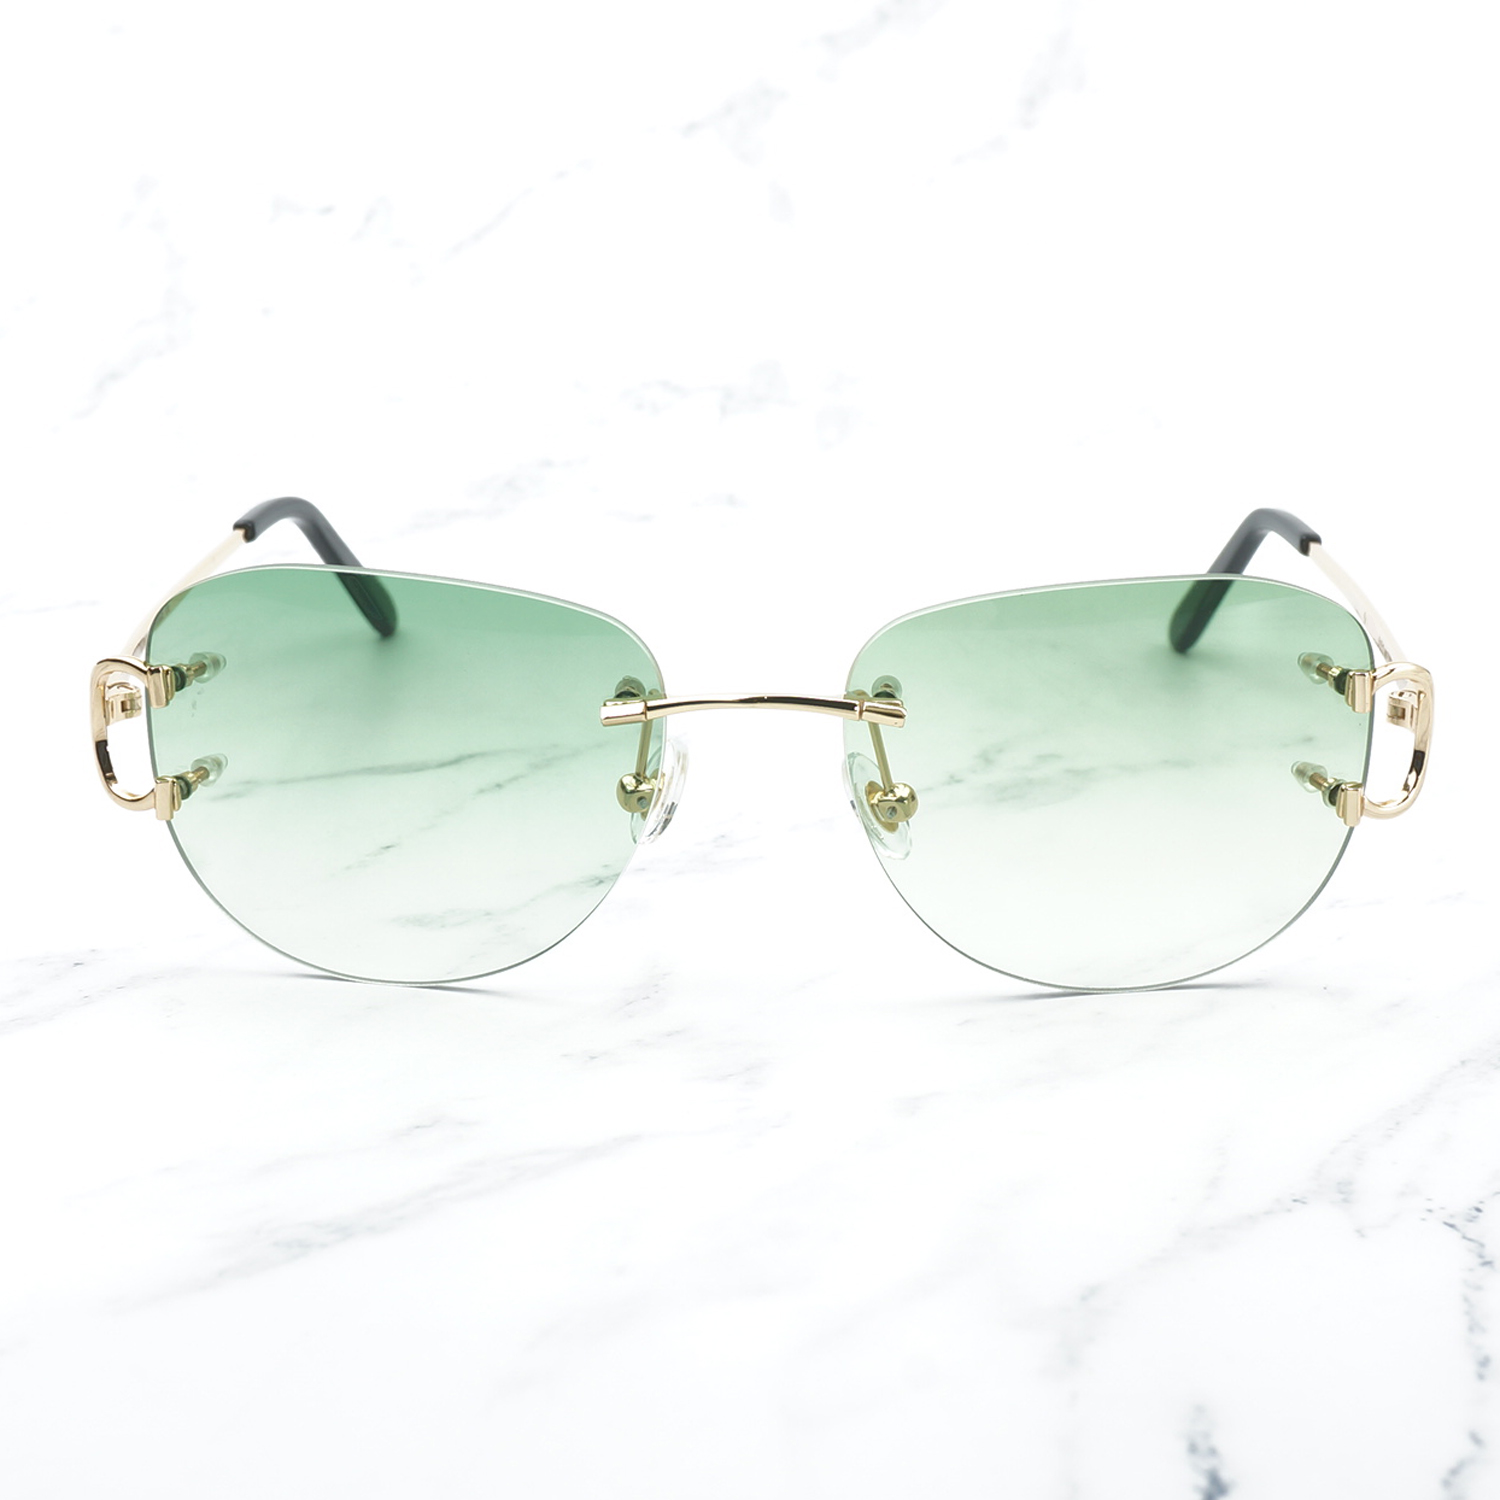 Image 3 - Vintage Pilot Sunglasses for Men Retro Carter Glasses Frame for Women A3 Wholesale Men Sunglass Promotion Female Glass Shades-in Women's Sunglasses from Apparel Accessories